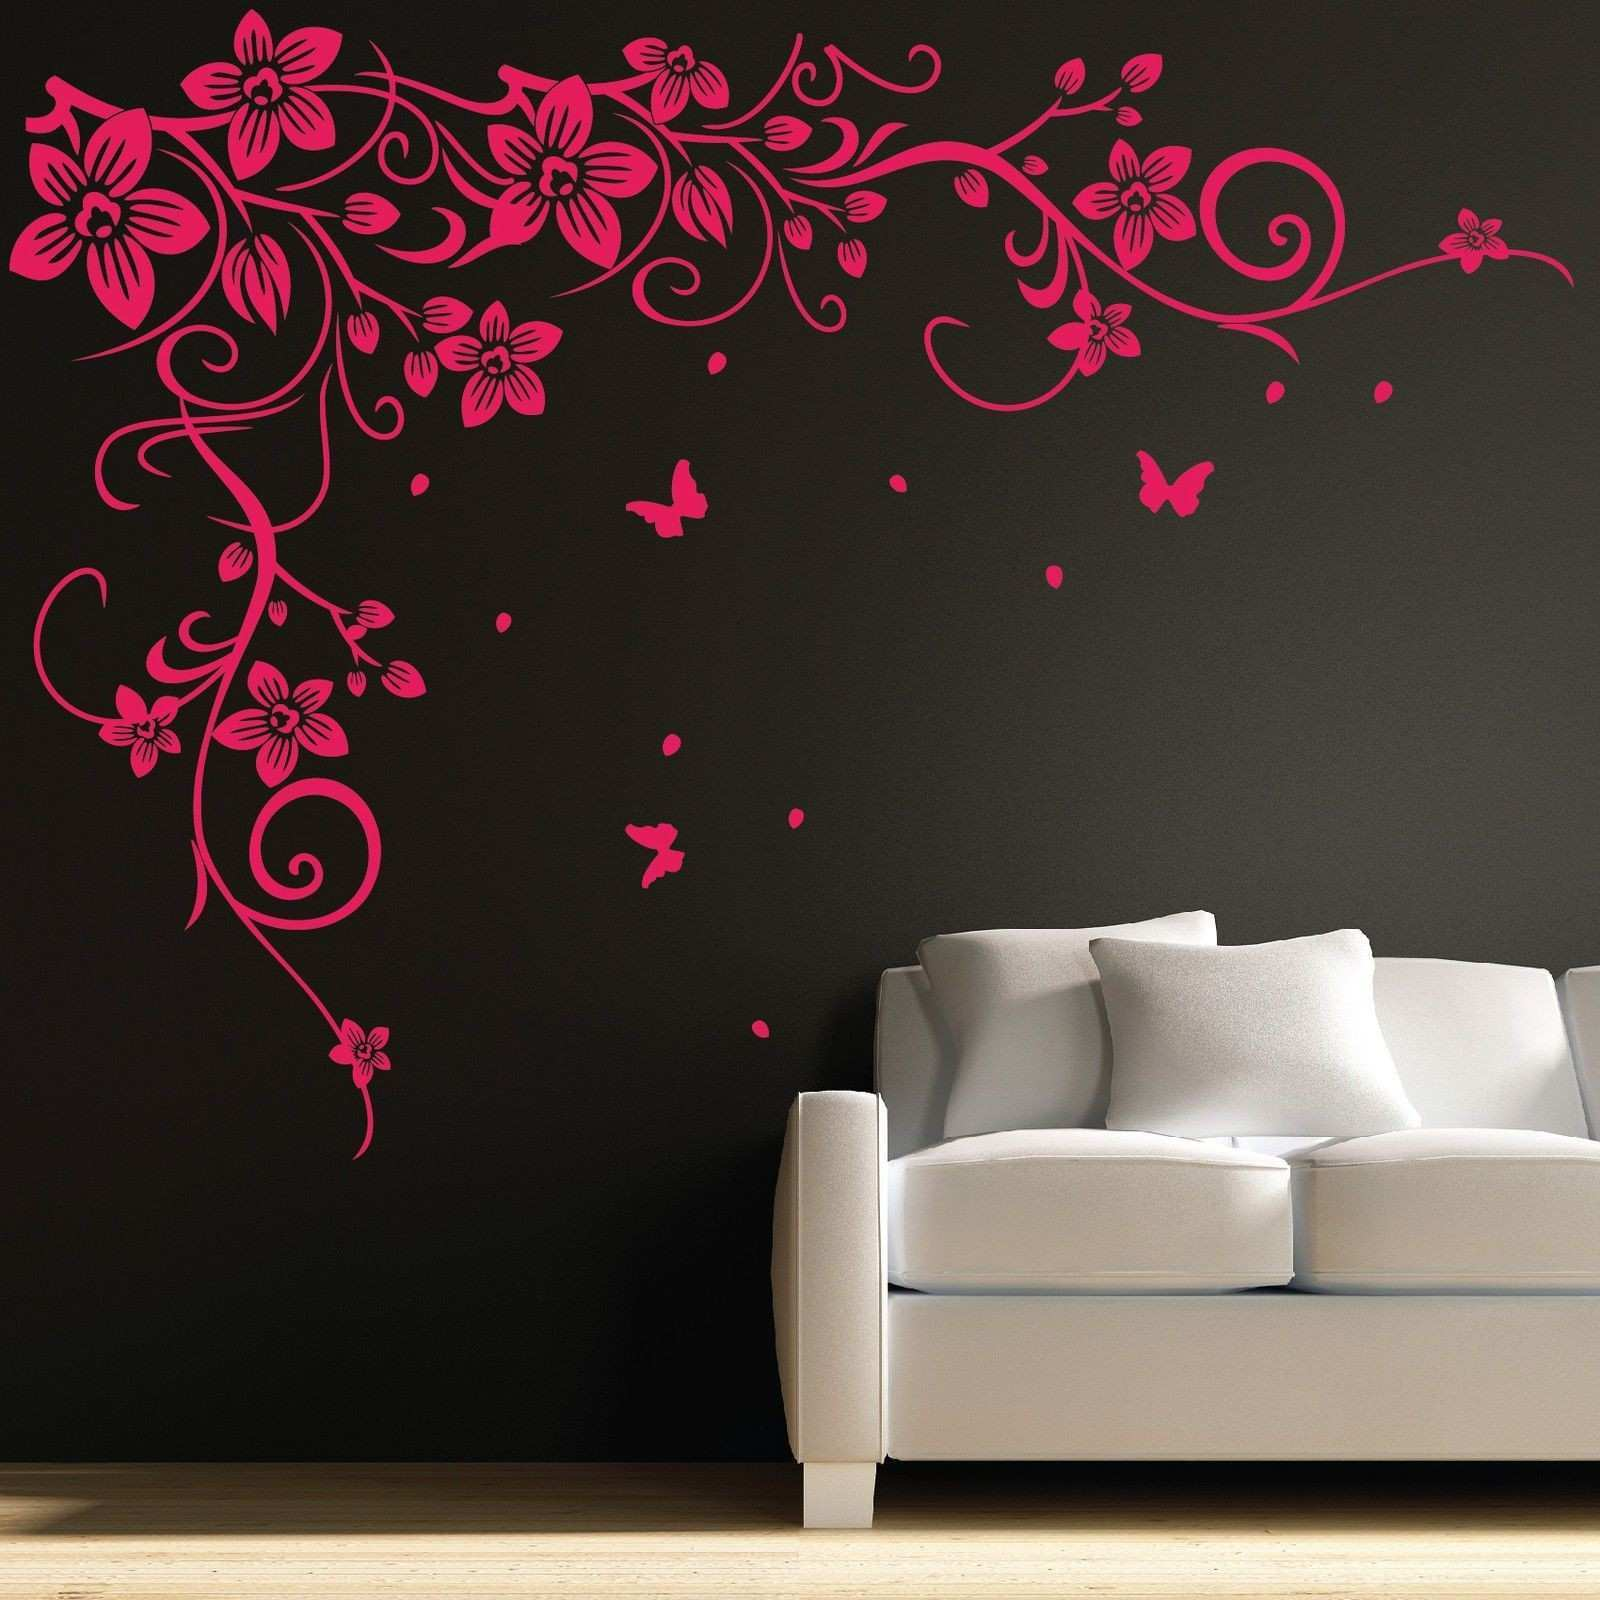 Interior Design 27 Butterfly Wall Decor Appealing Wall Decal